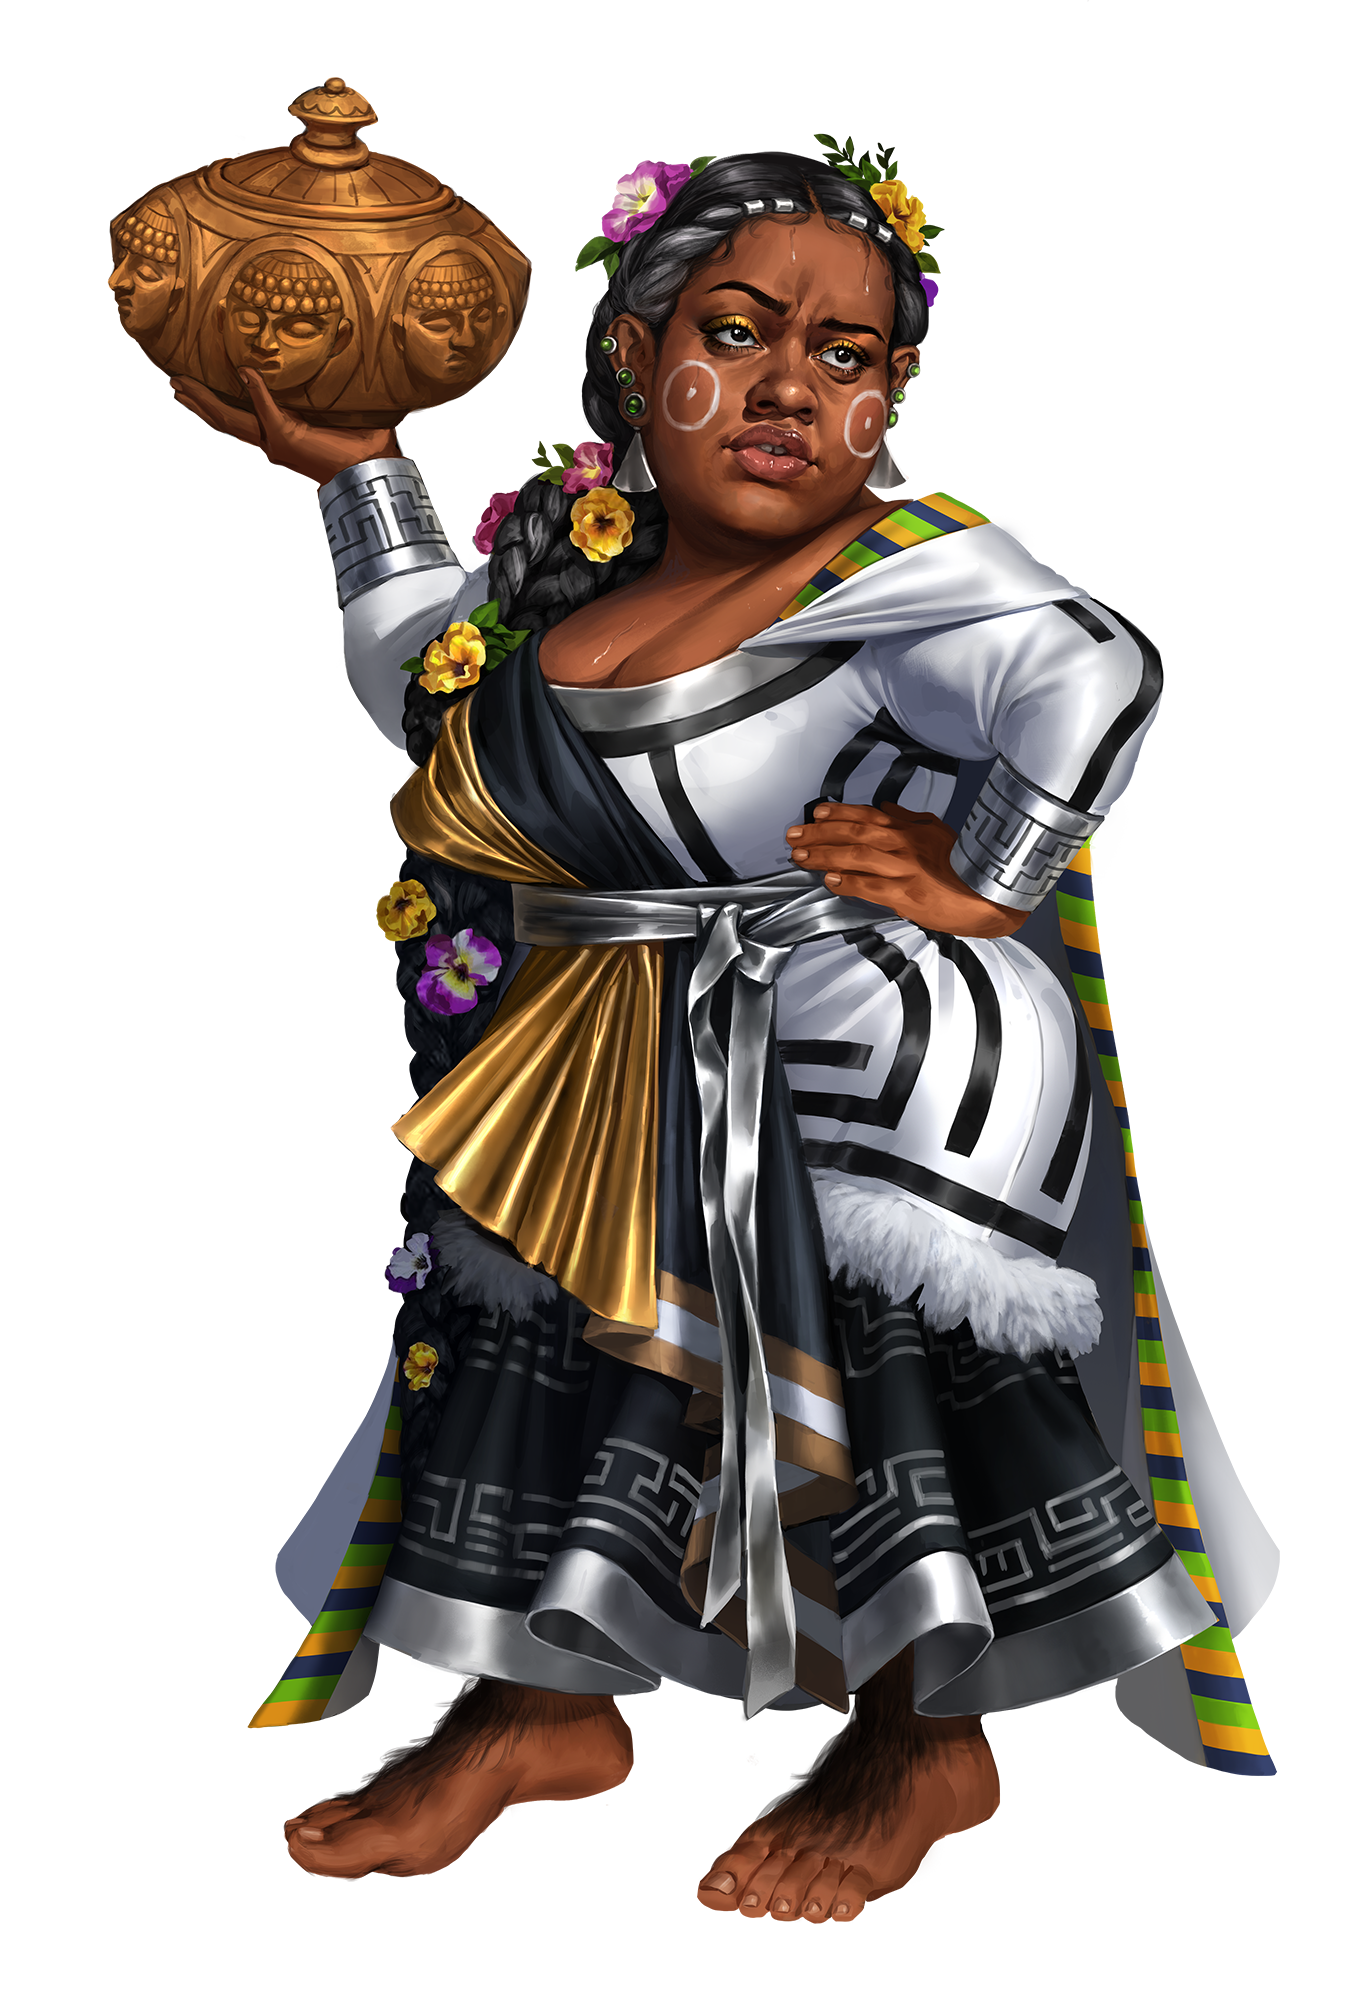 A halfling woman with a stylish black and white dress holding a golden pot